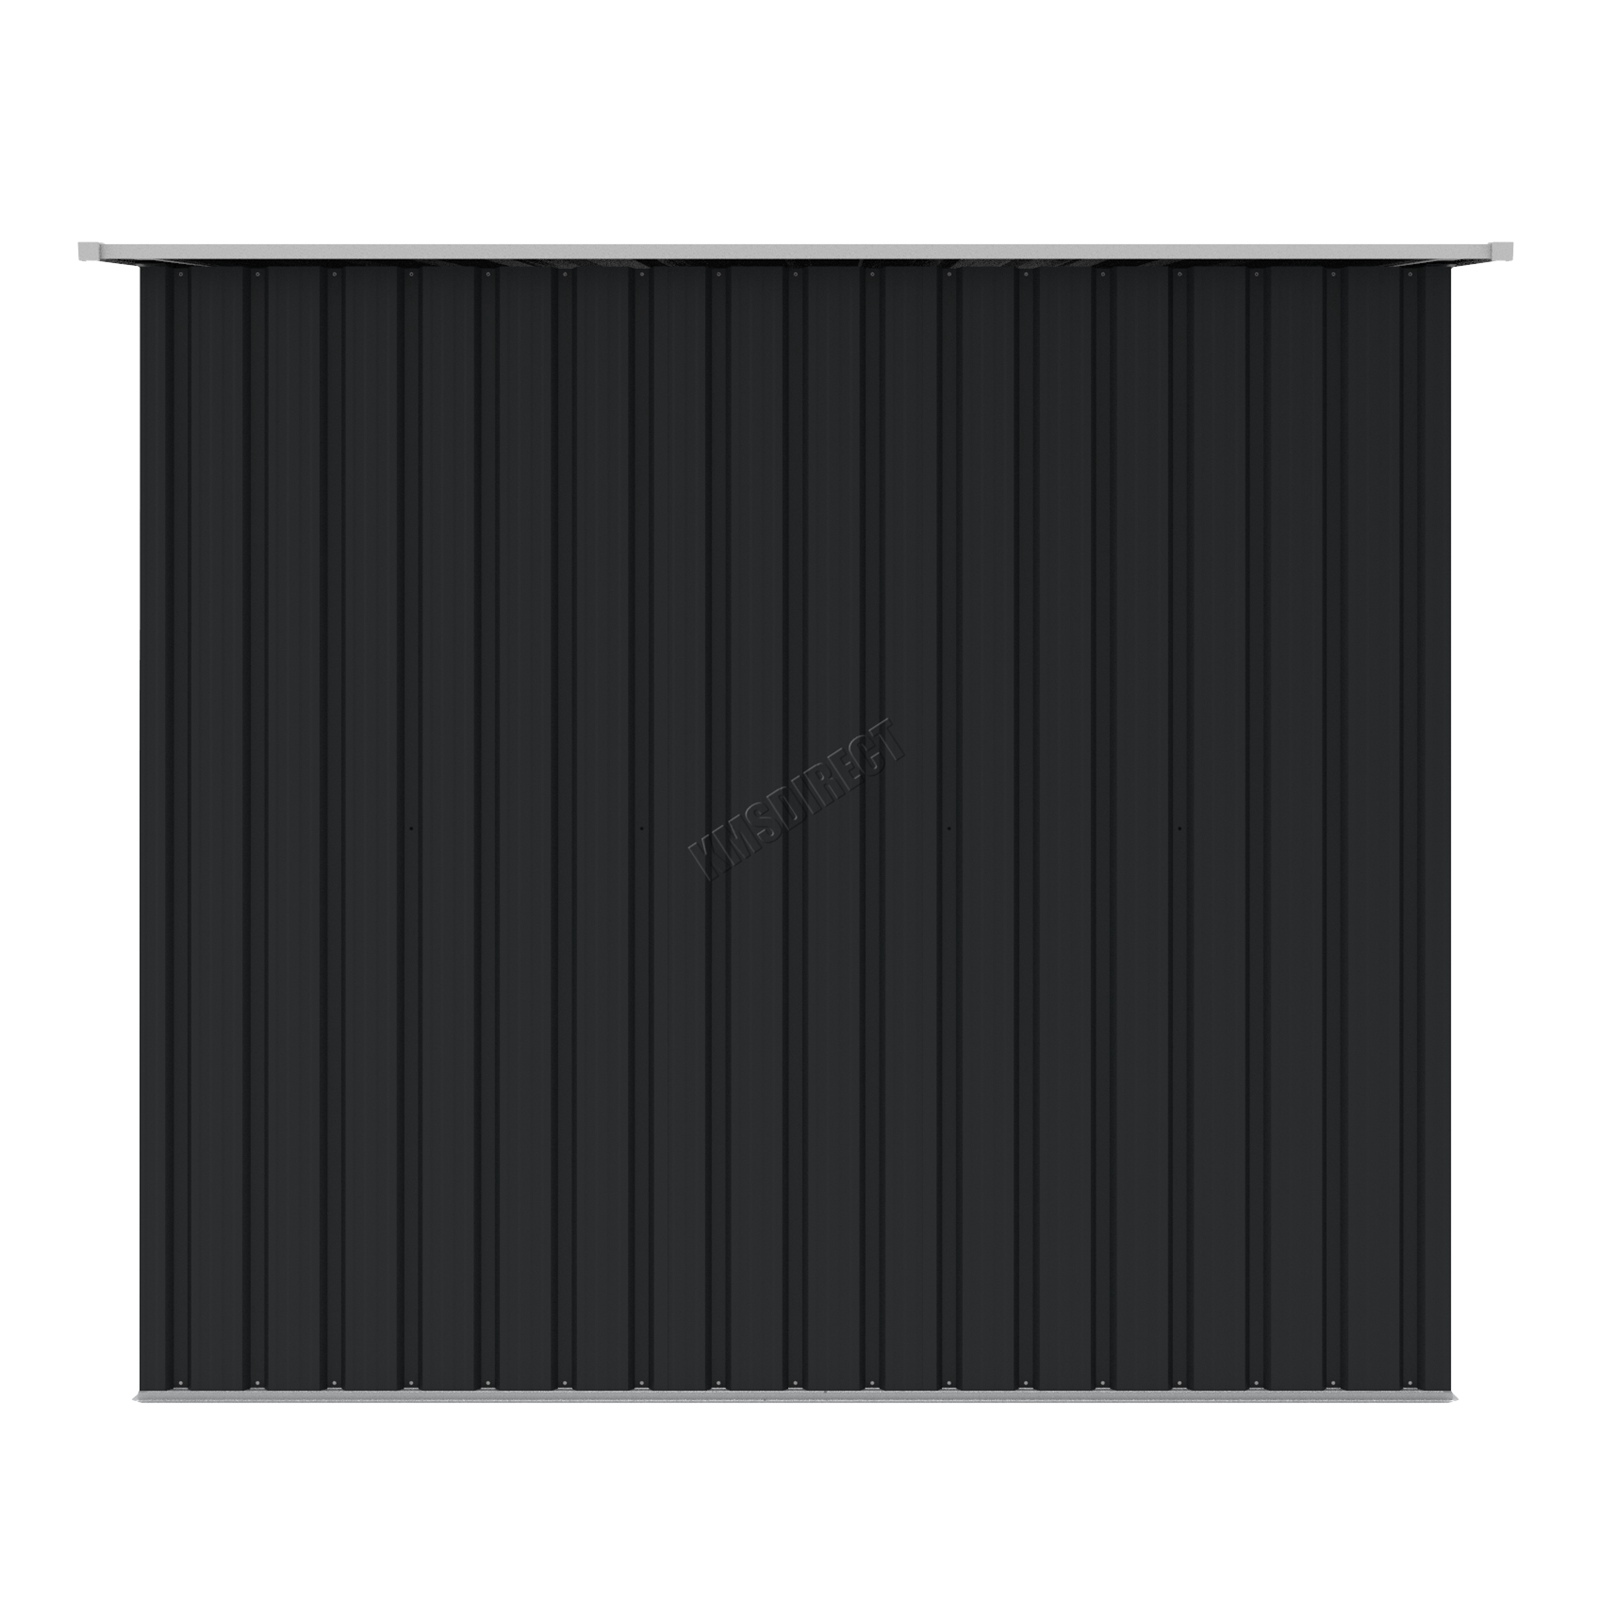 Foxhunter new garden shed metal pent roof outdoor storage for Garden shed tab